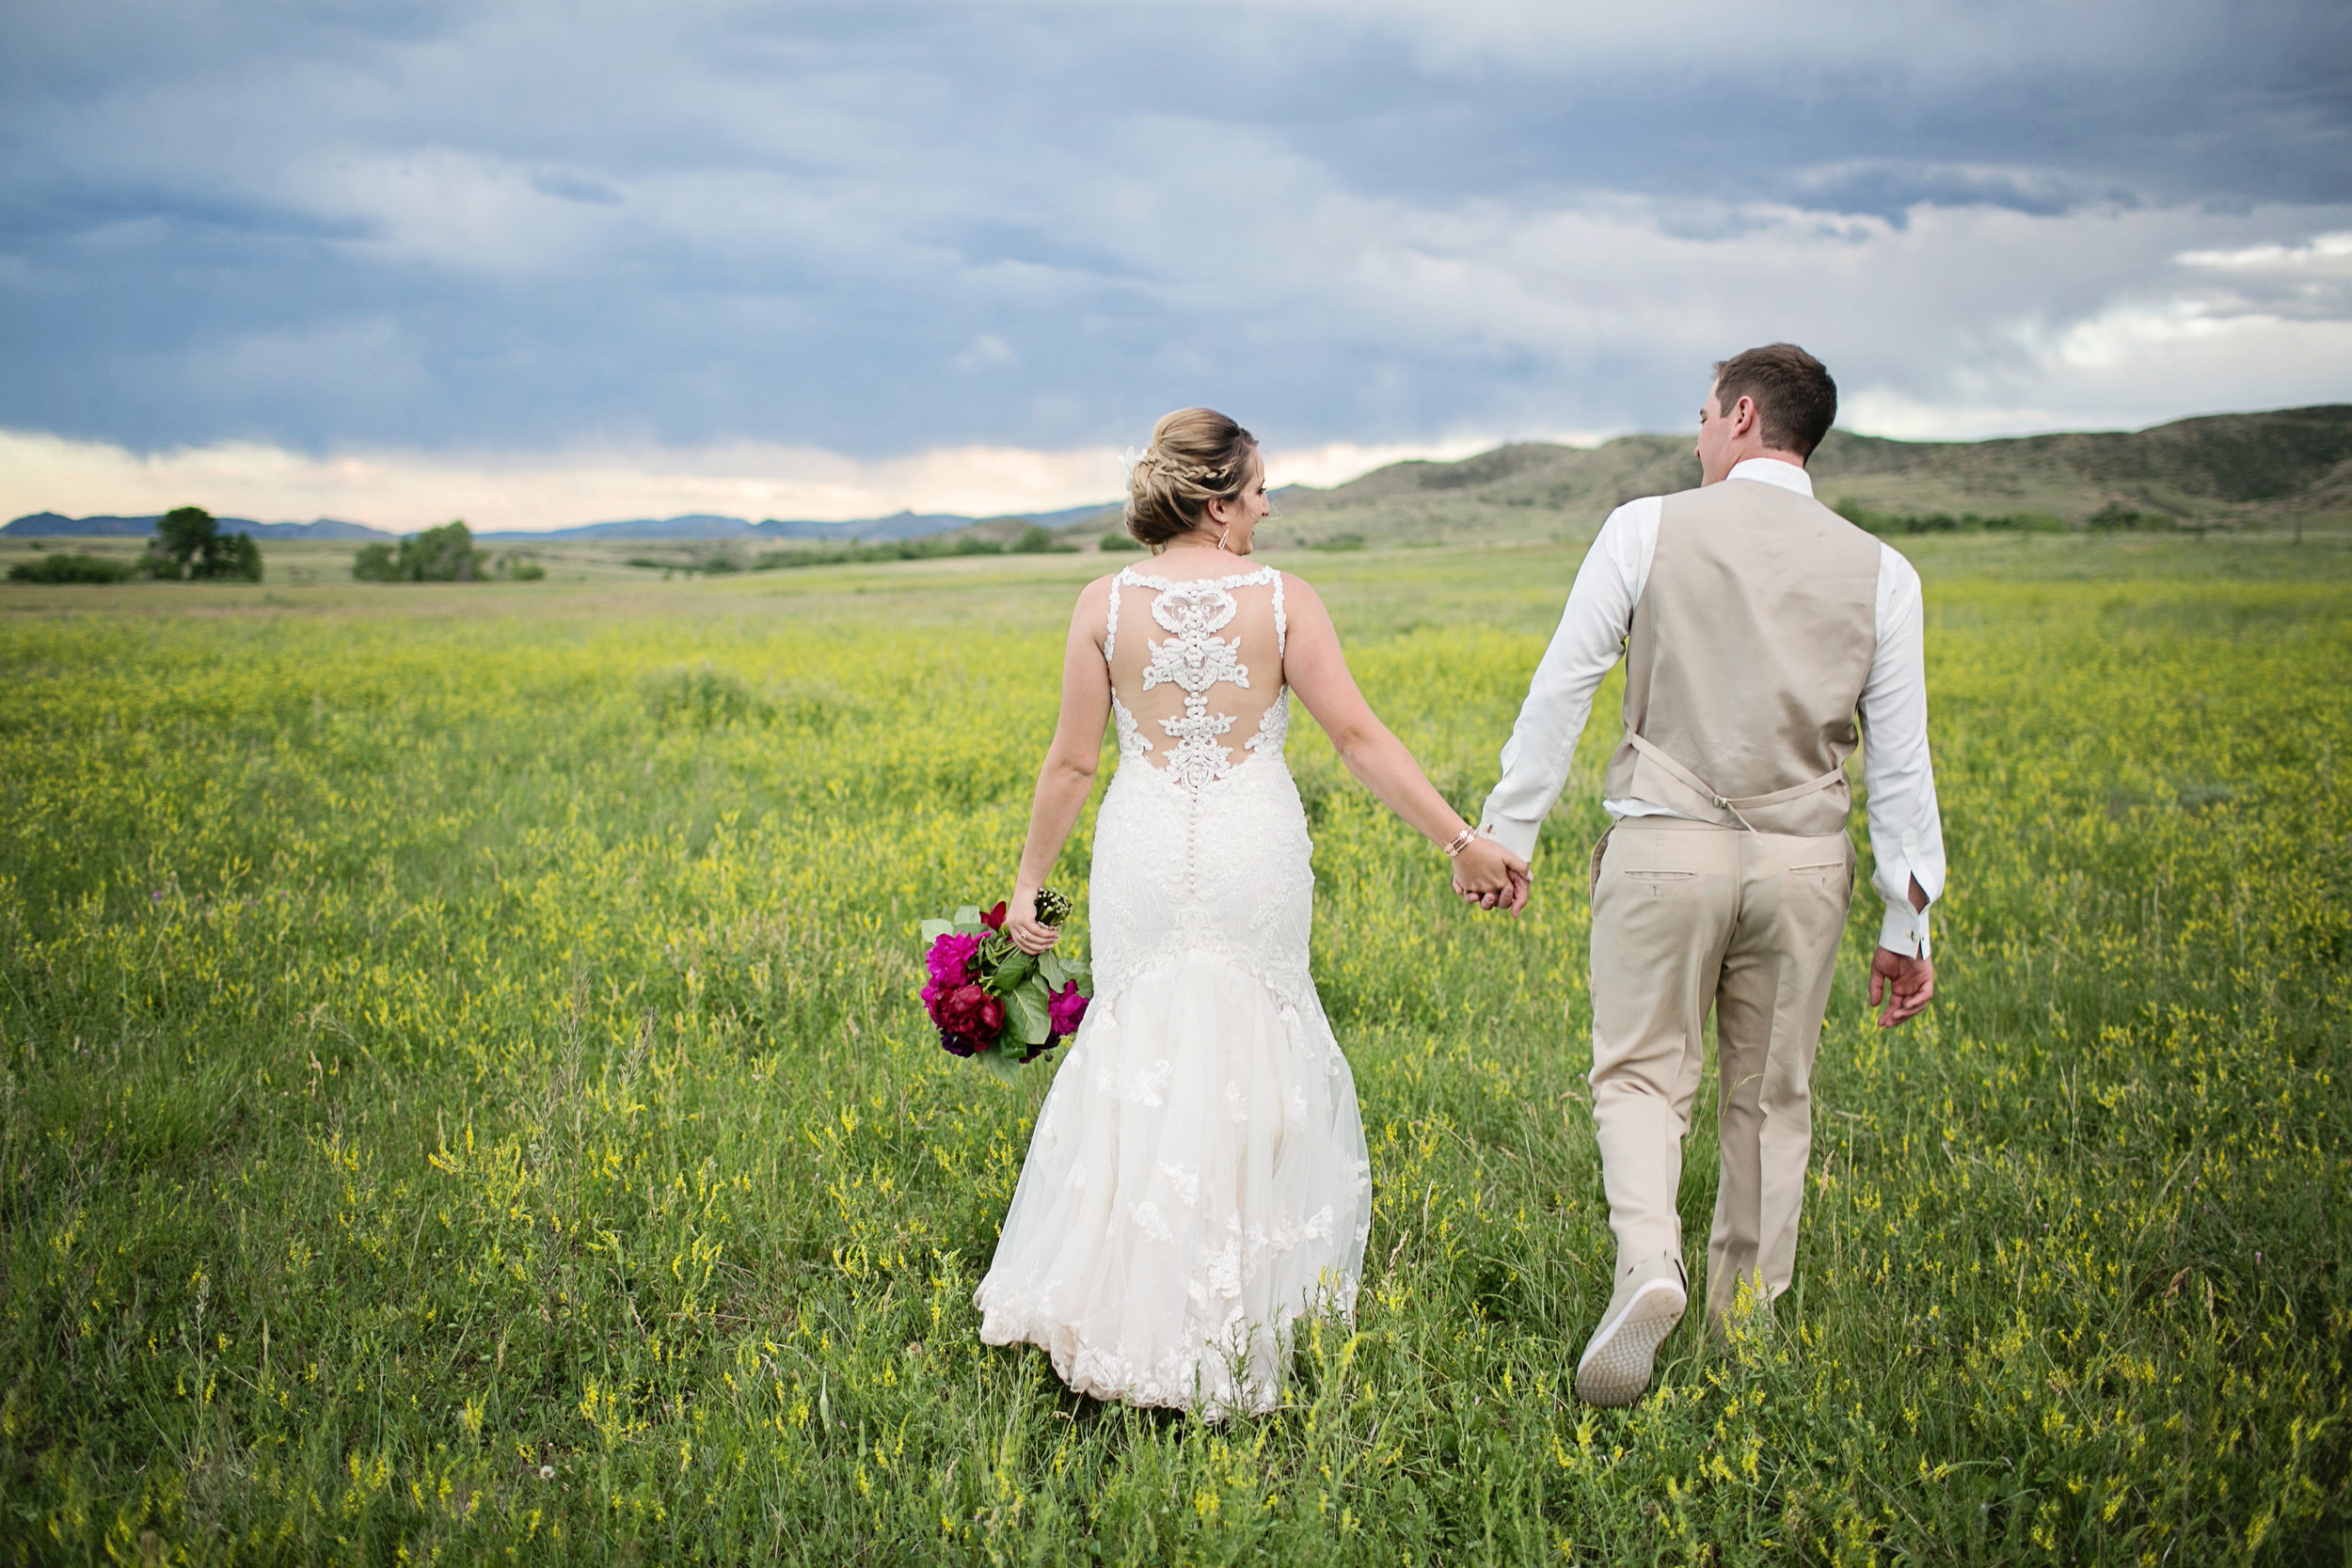 Bogner Wedding  Livermore, CO   Rhema Faith Photography  | Private Estate |  Atmosphere Floral  |  FLEXX Productions  |  Scripted Sweetly  |  Olive + Fig & Co.  |  Makeup by Taylor Phillips  |  O.Ski Films  |  Dora Grace Bridal